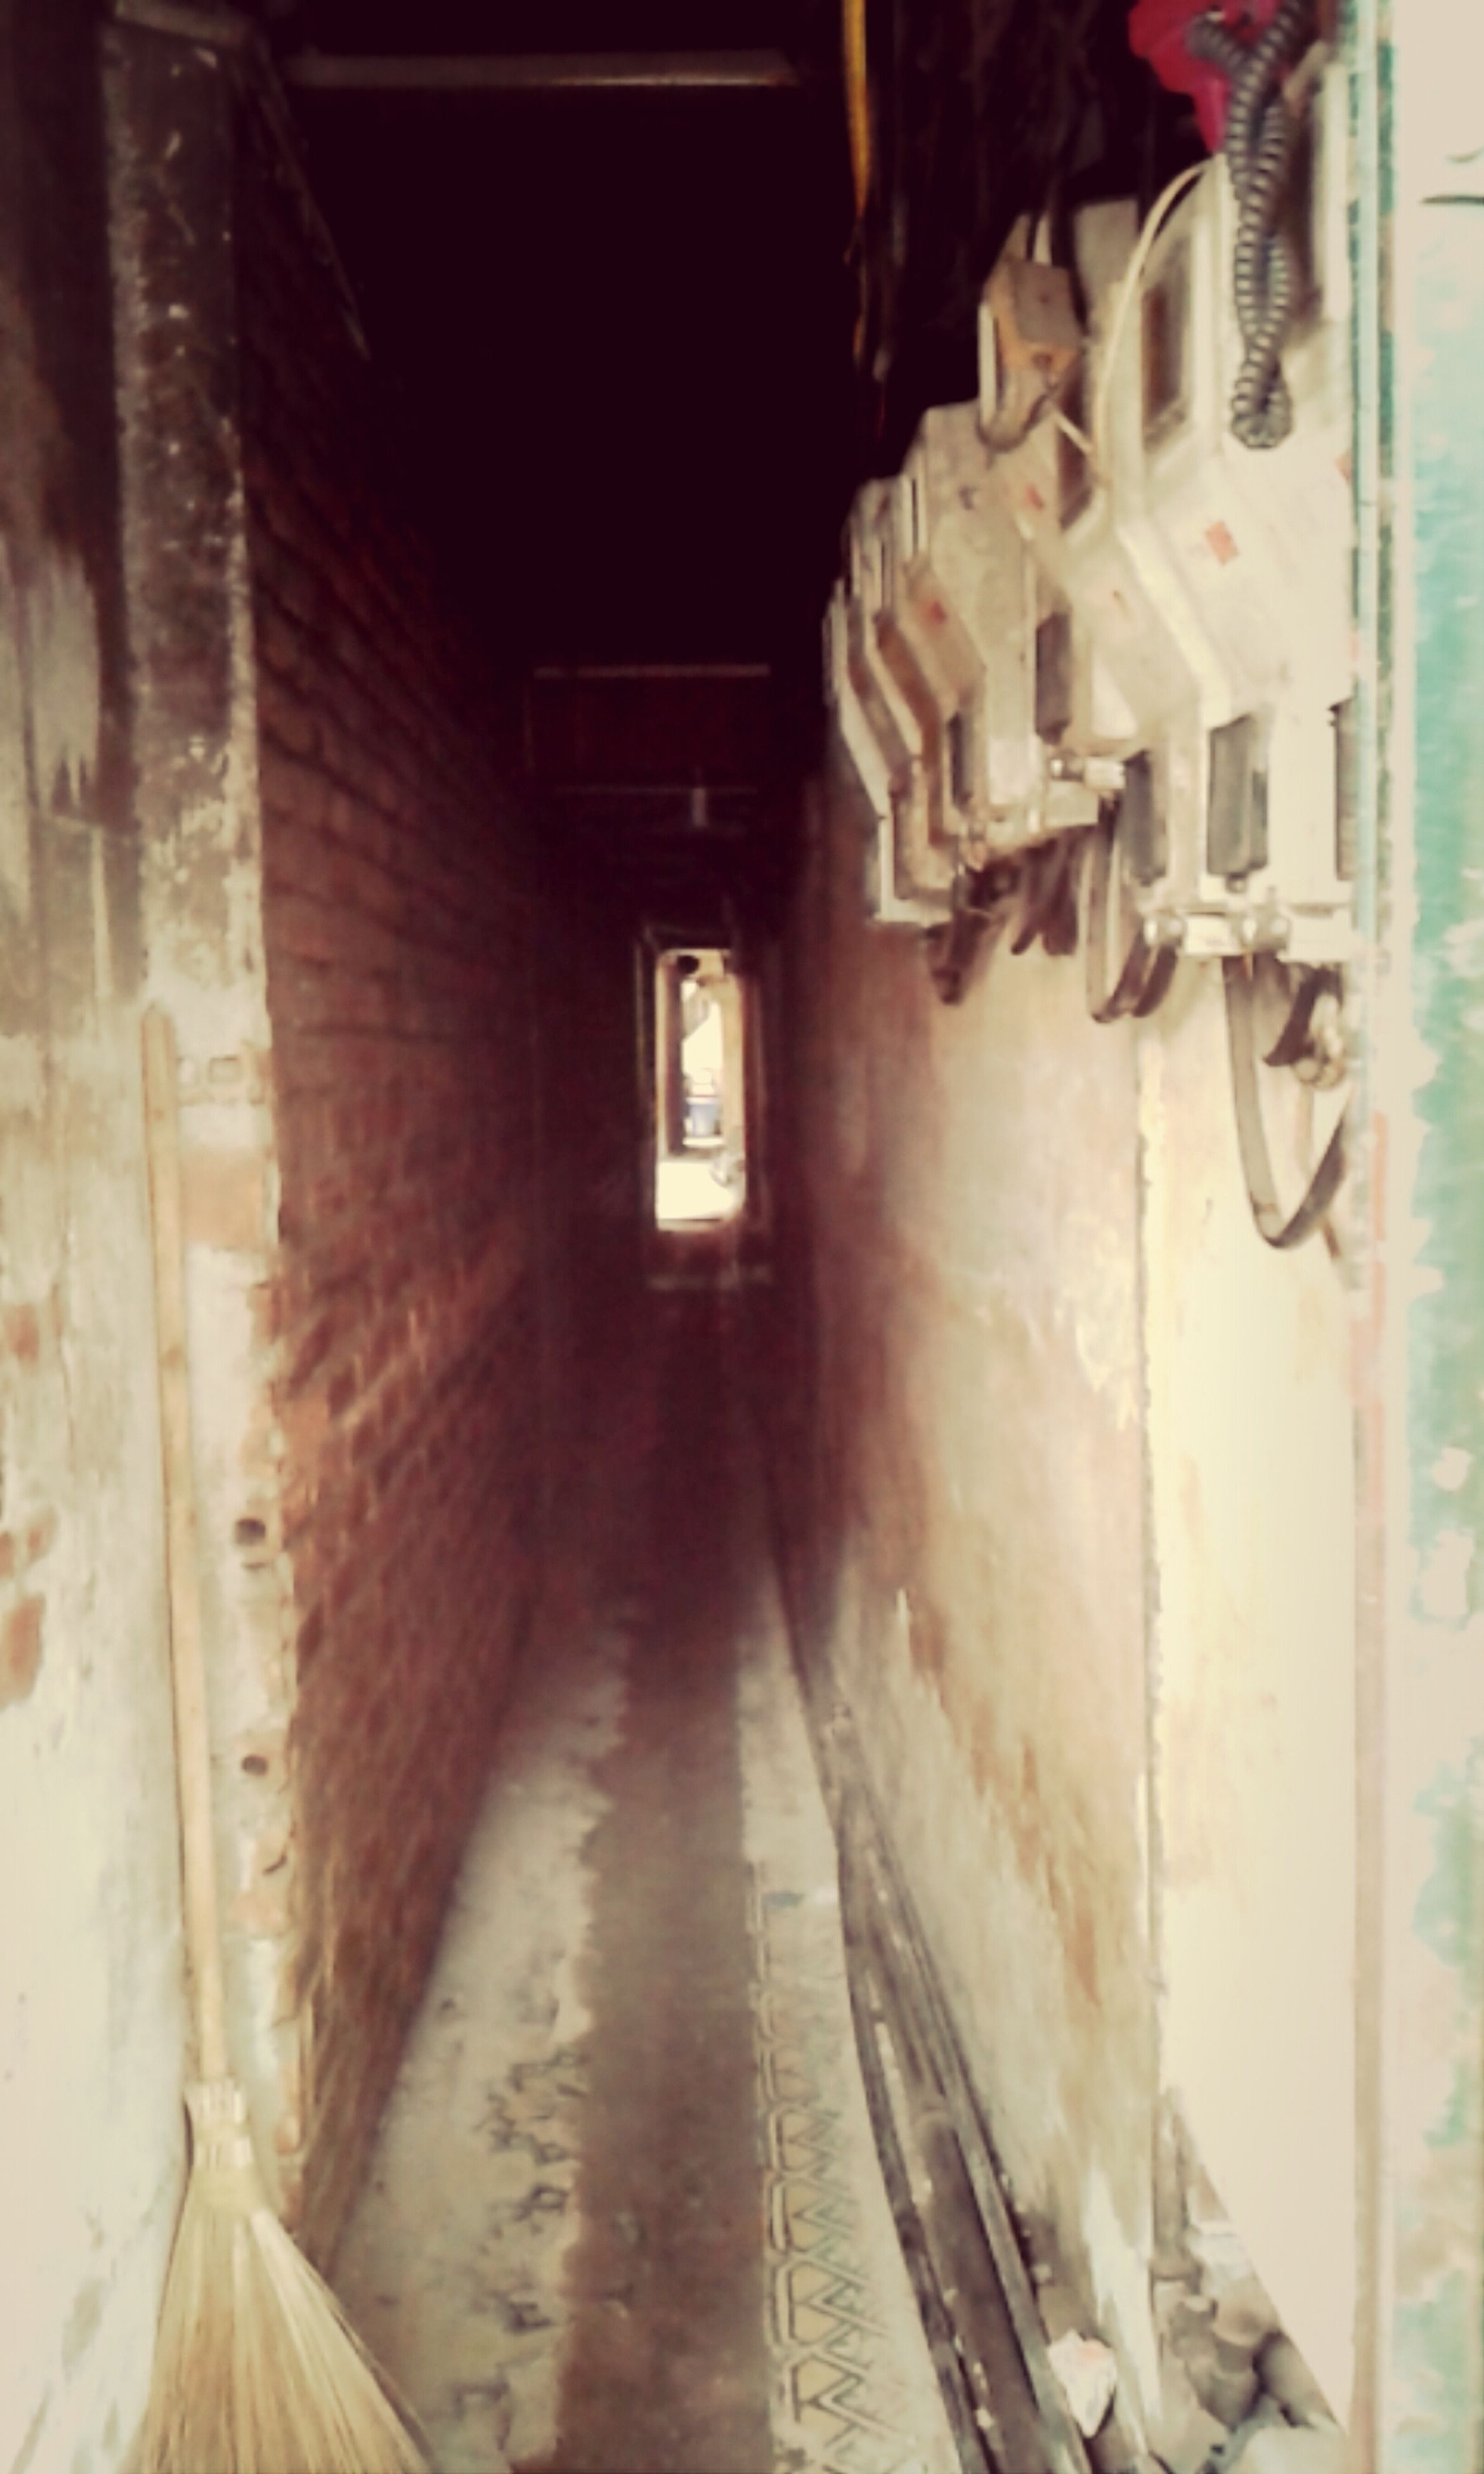 indoors, architecture, built structure, illuminated, old, wall - building feature, door, the way forward, wall, building, diminishing perspective, abandoned, corridor, no people, lighting equipment, entrance, night, interior, building exterior, narrow